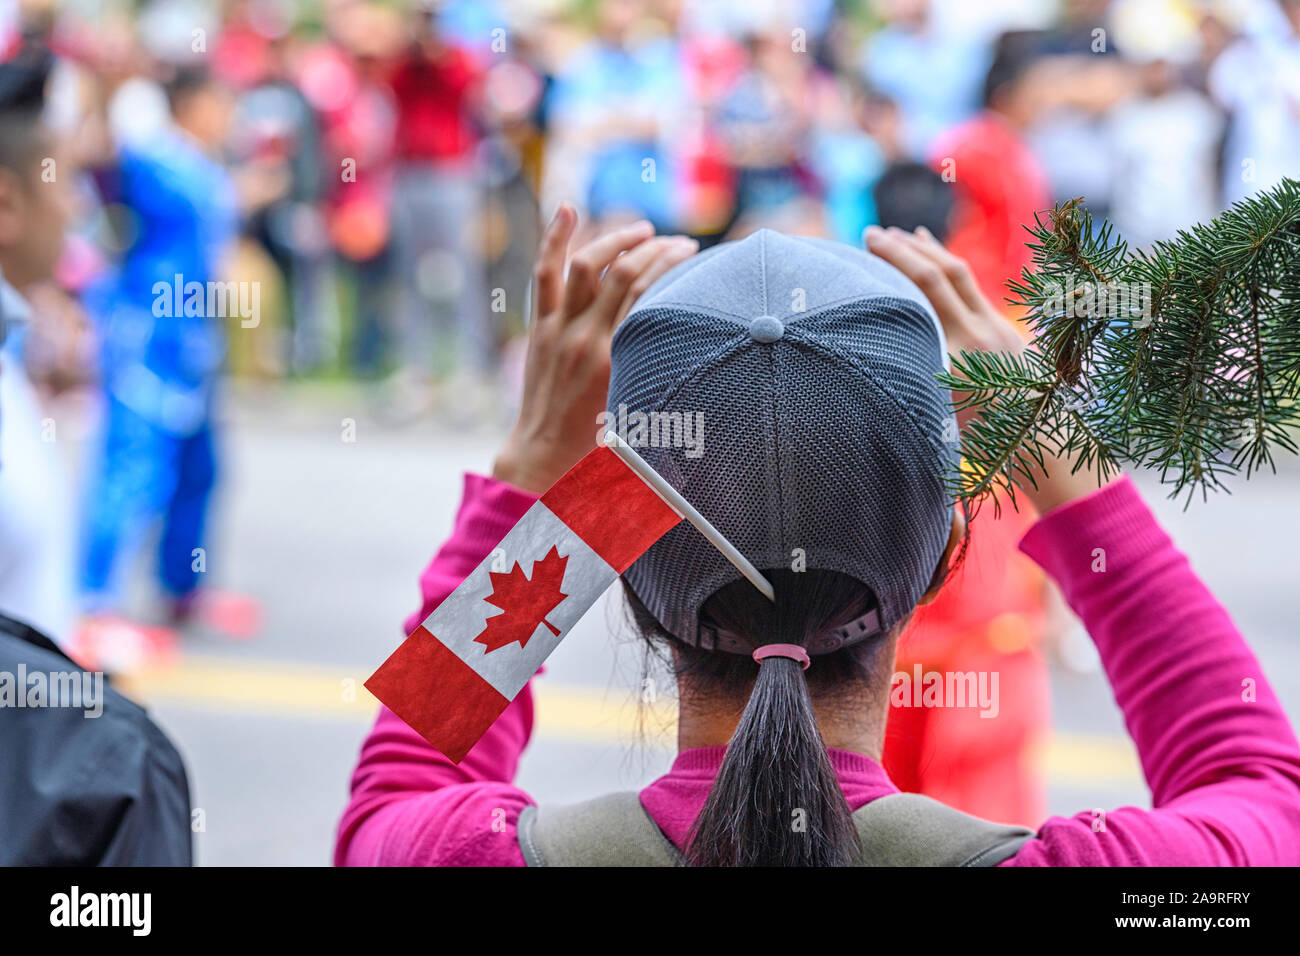 woman-taking-photos-with-her-smartphone-at-the-canada-day-celebrations-in-calgary-alberta-canada-2A9RFRY.jpg